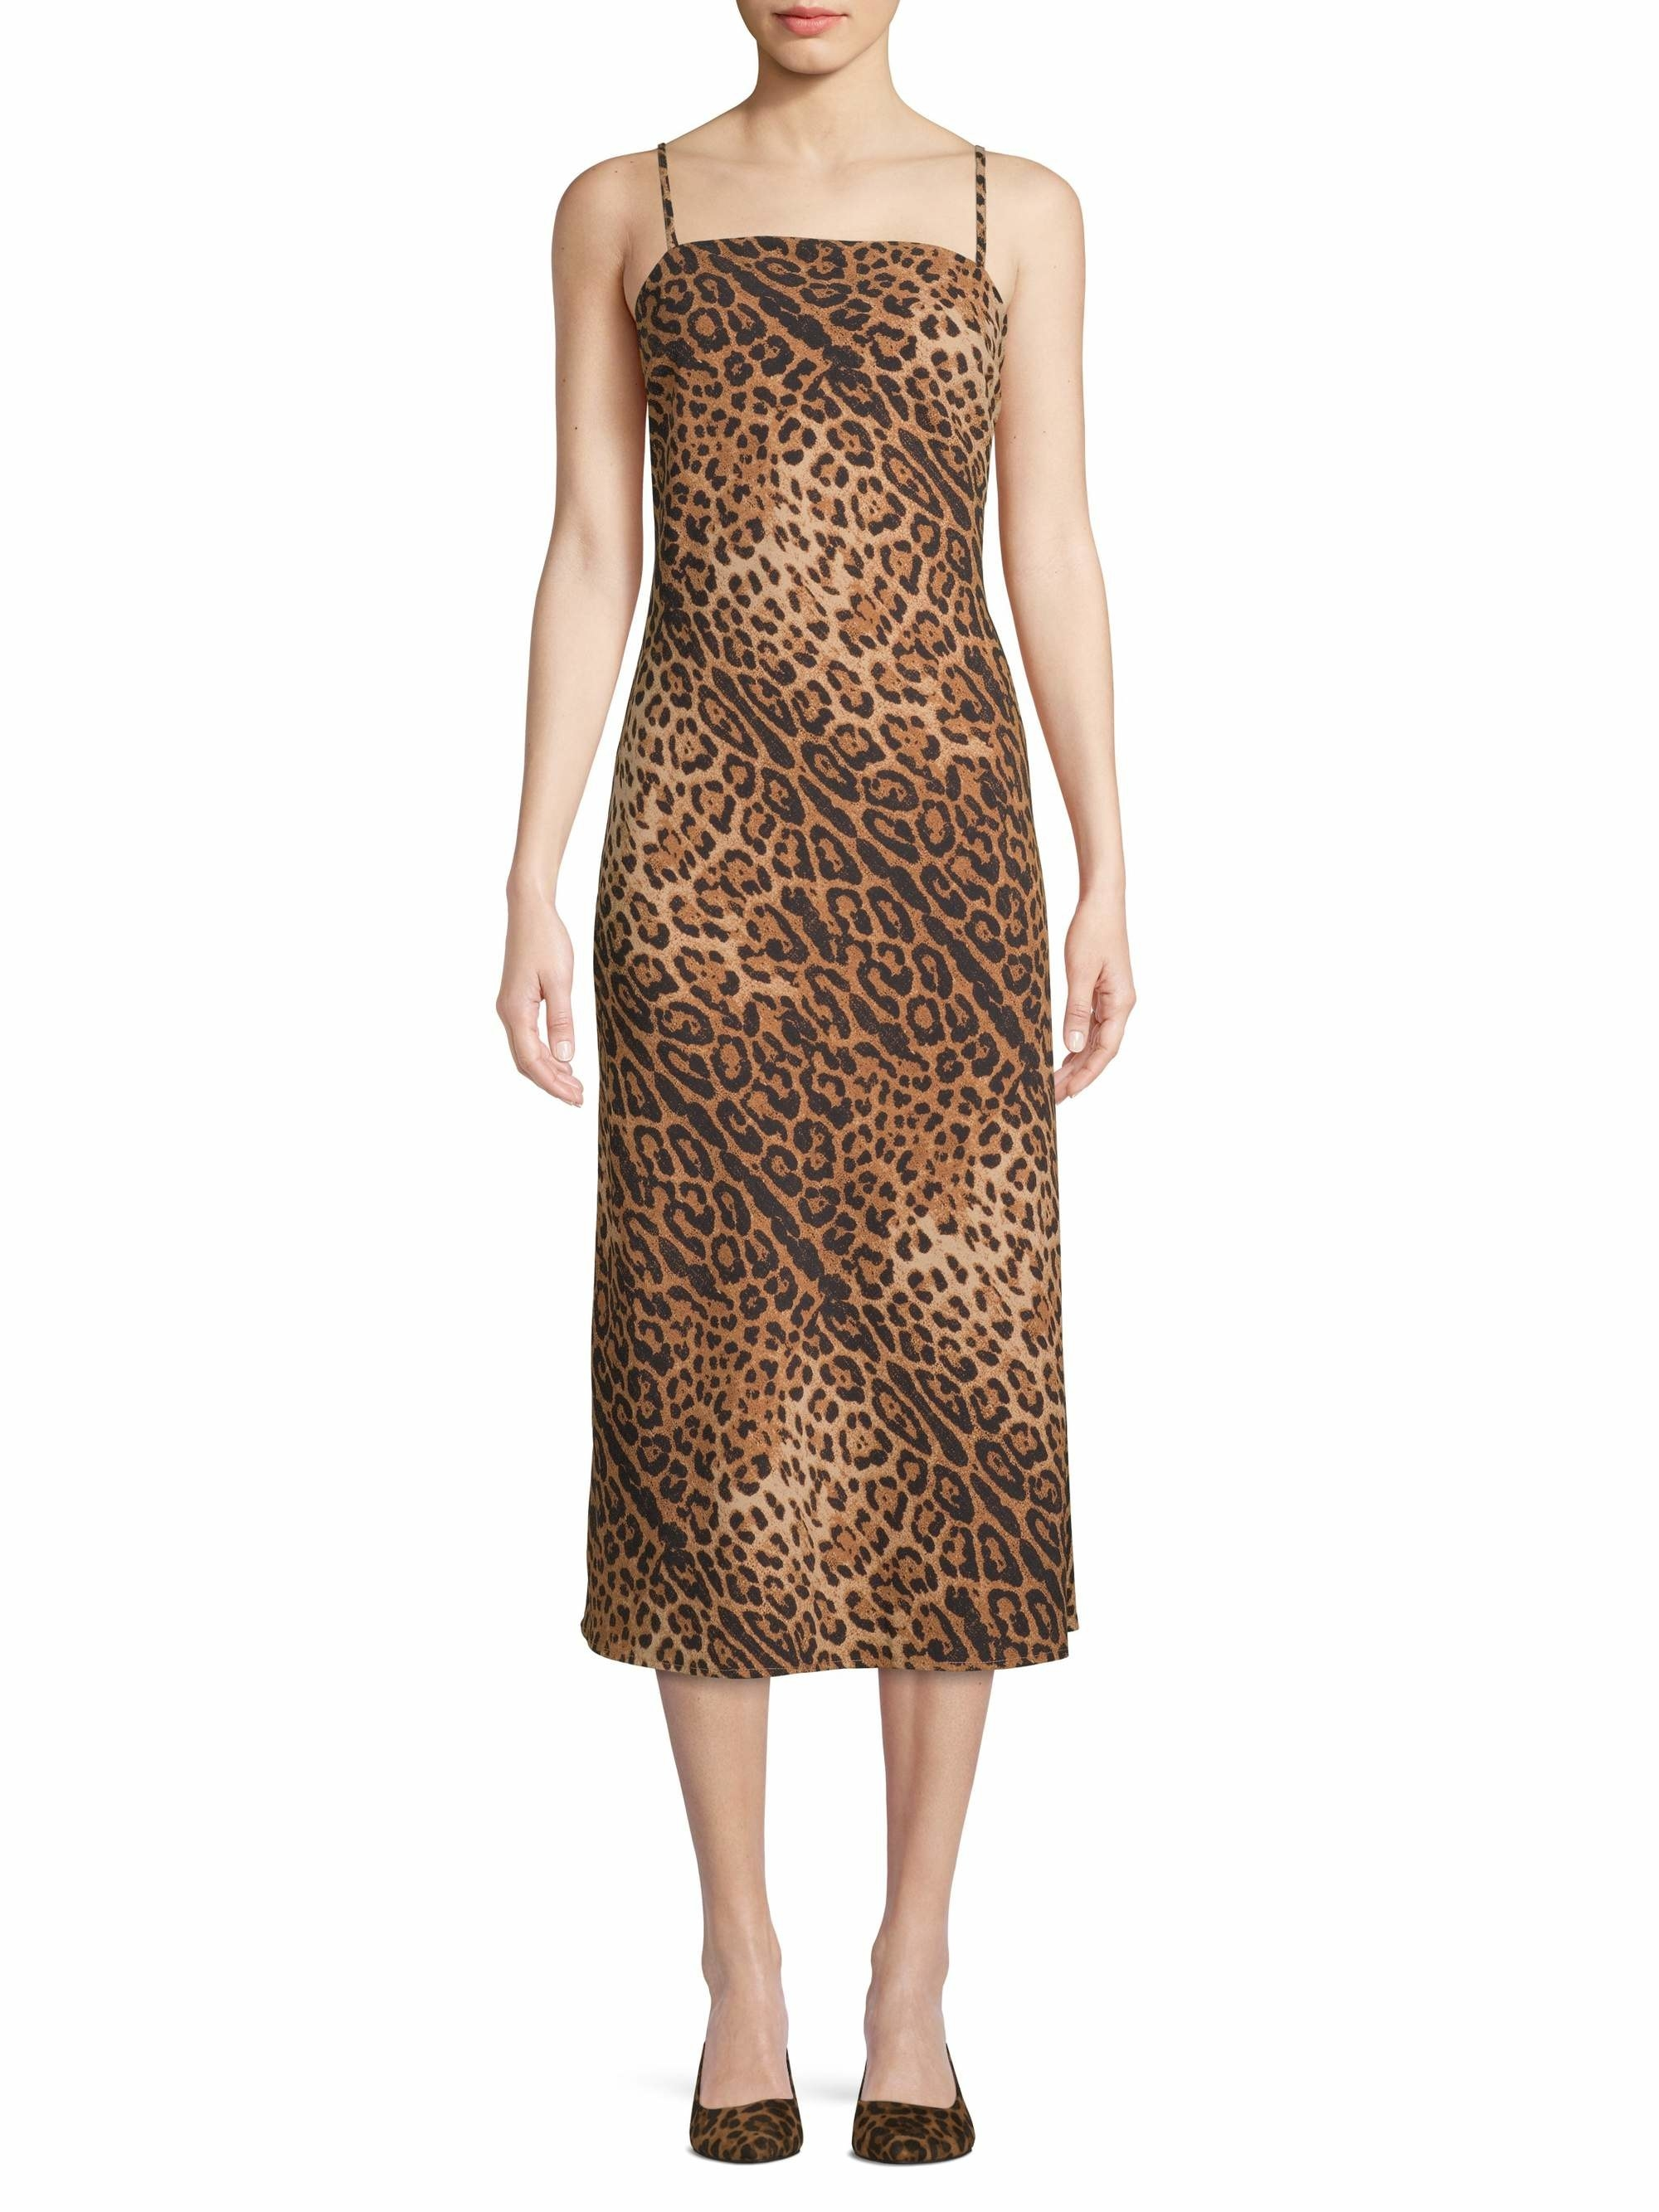 a model in a tan leopard print dress